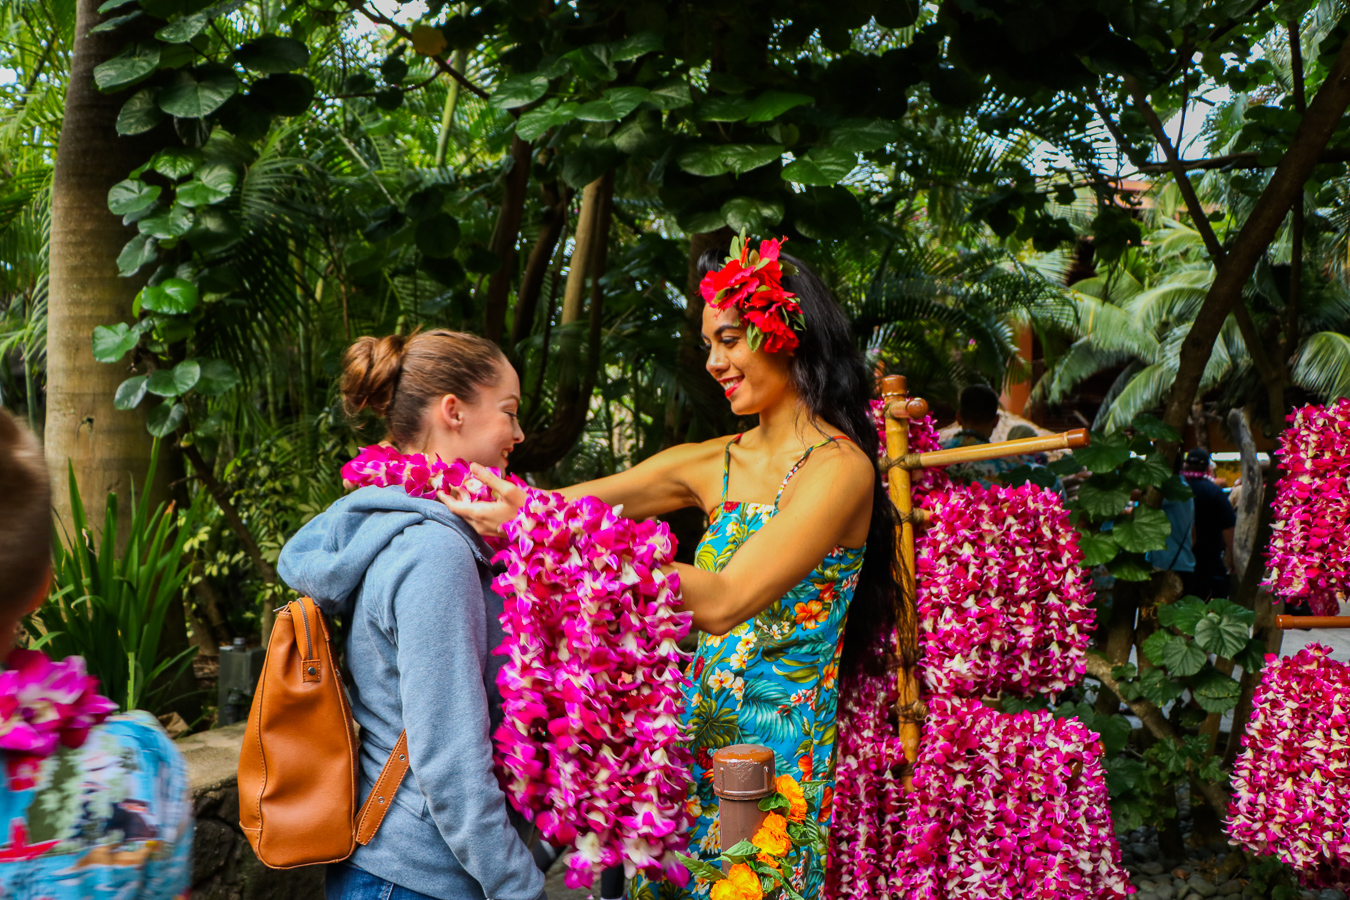 #comment 852524 on Polynesian Cultural Center Buffet